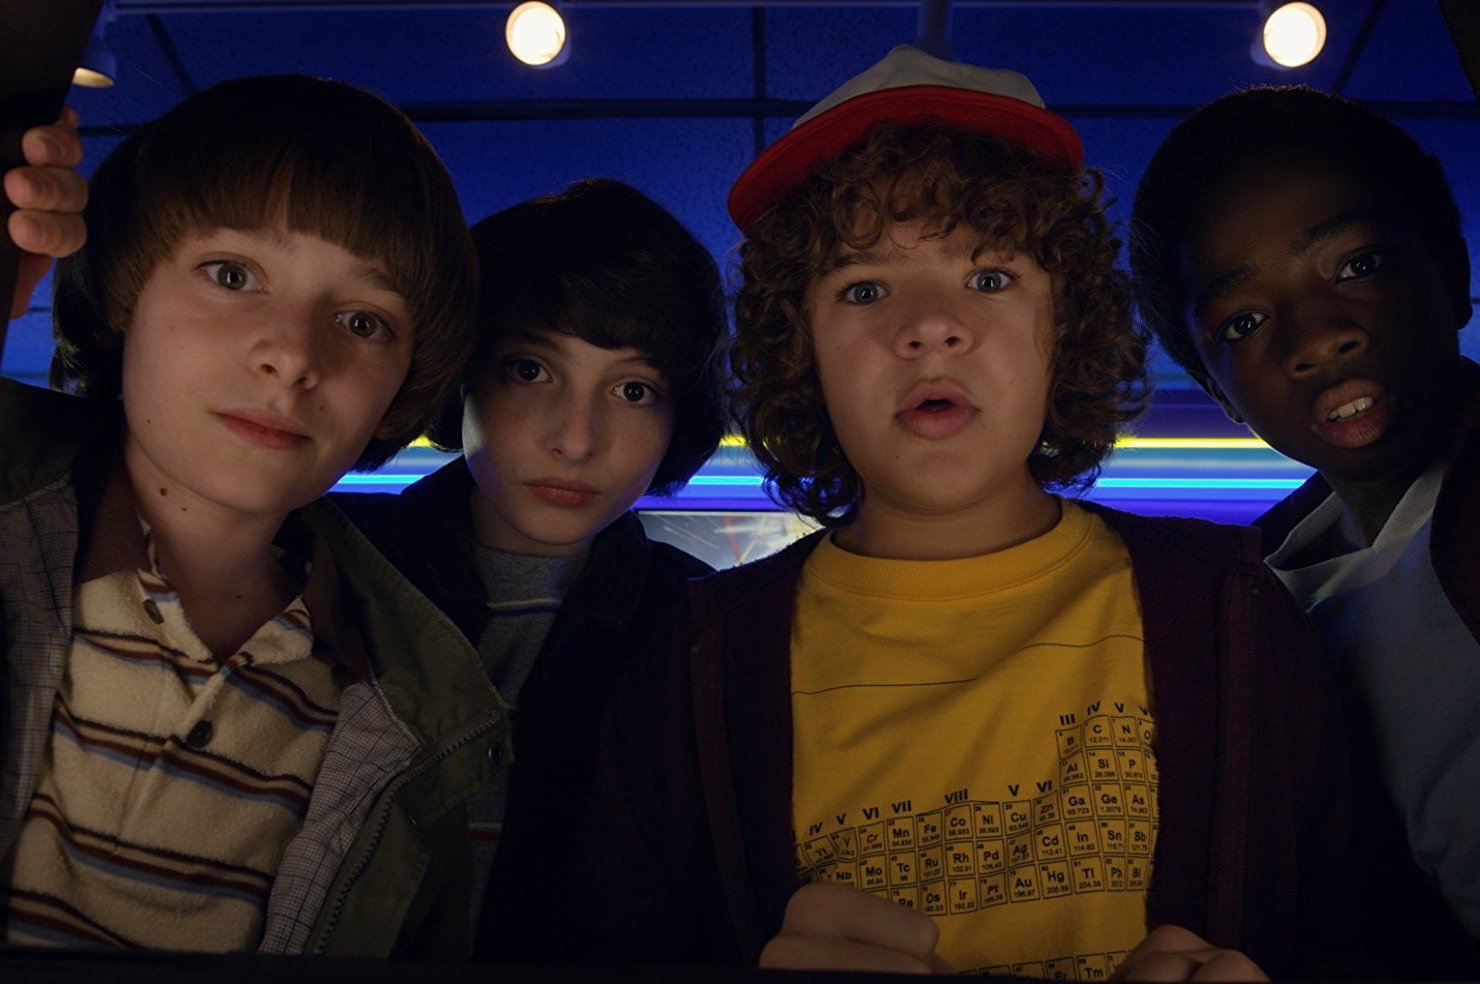 stranger-things-2-nin%cc%83os